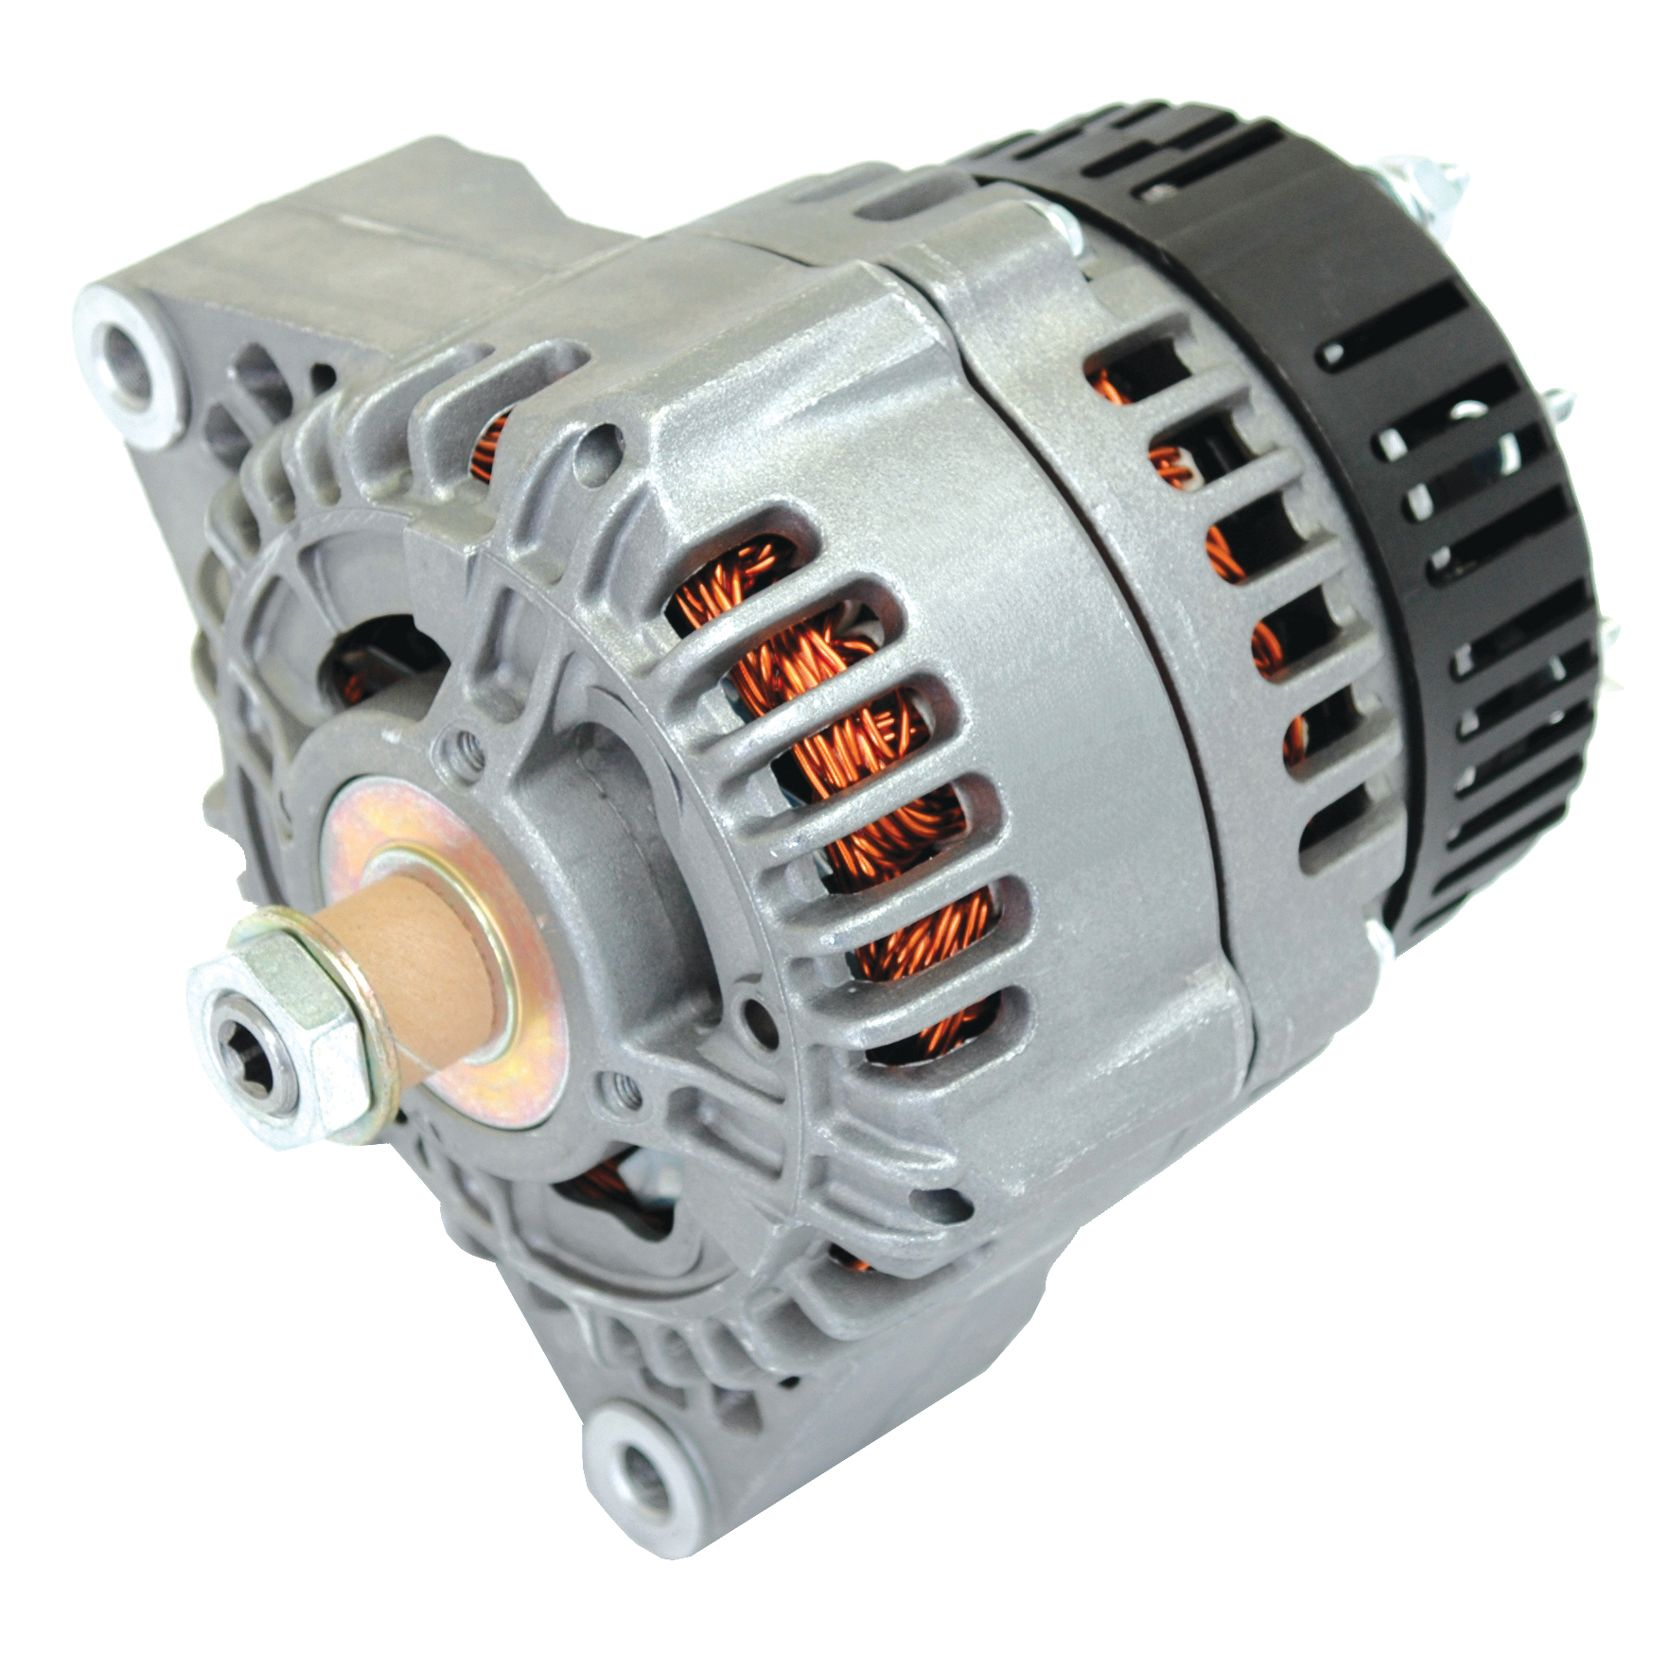 DEUTZ-FAHR ALTERNATOR 36093